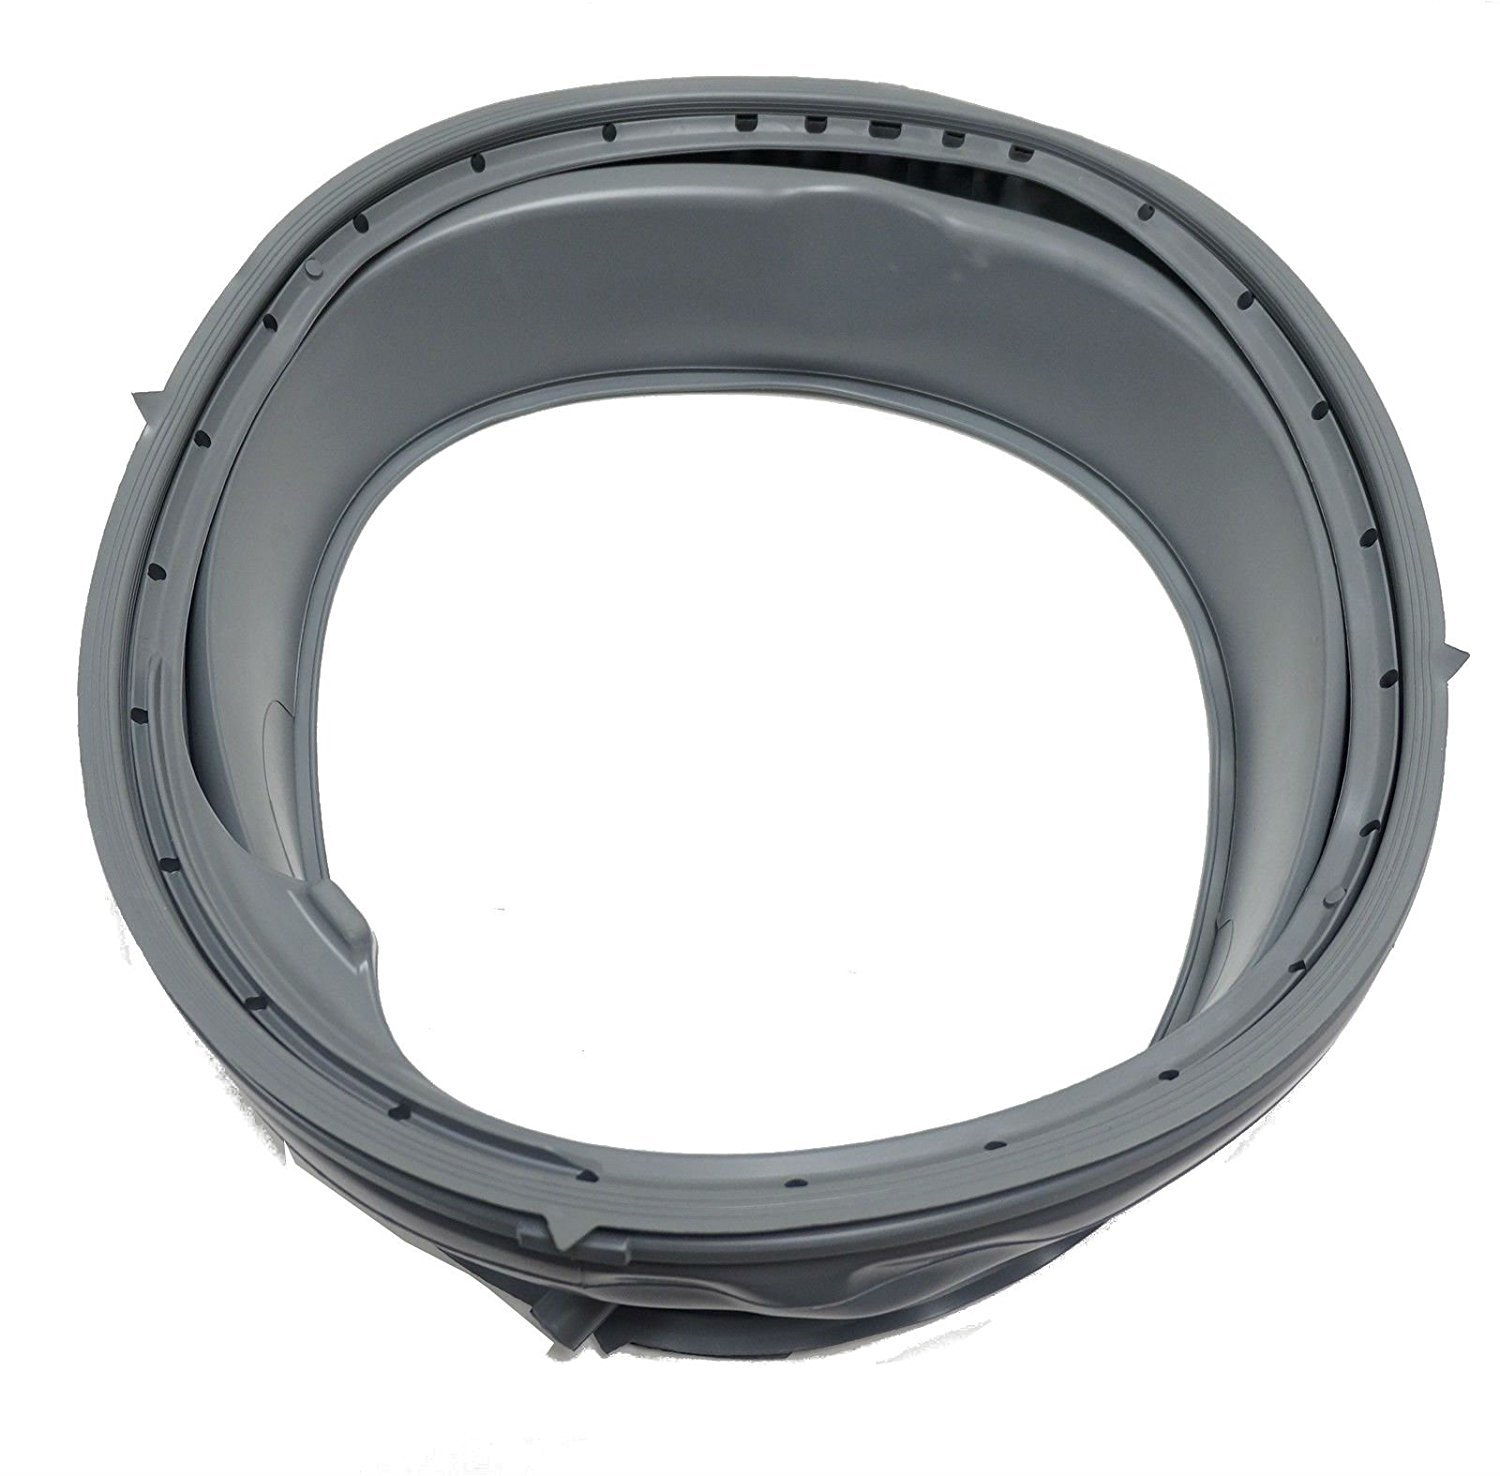 Kenmore Frigidaire Westinghouse Washer / Washine Door Boot seal gasket COUP522 Fits 134740900, 134741400